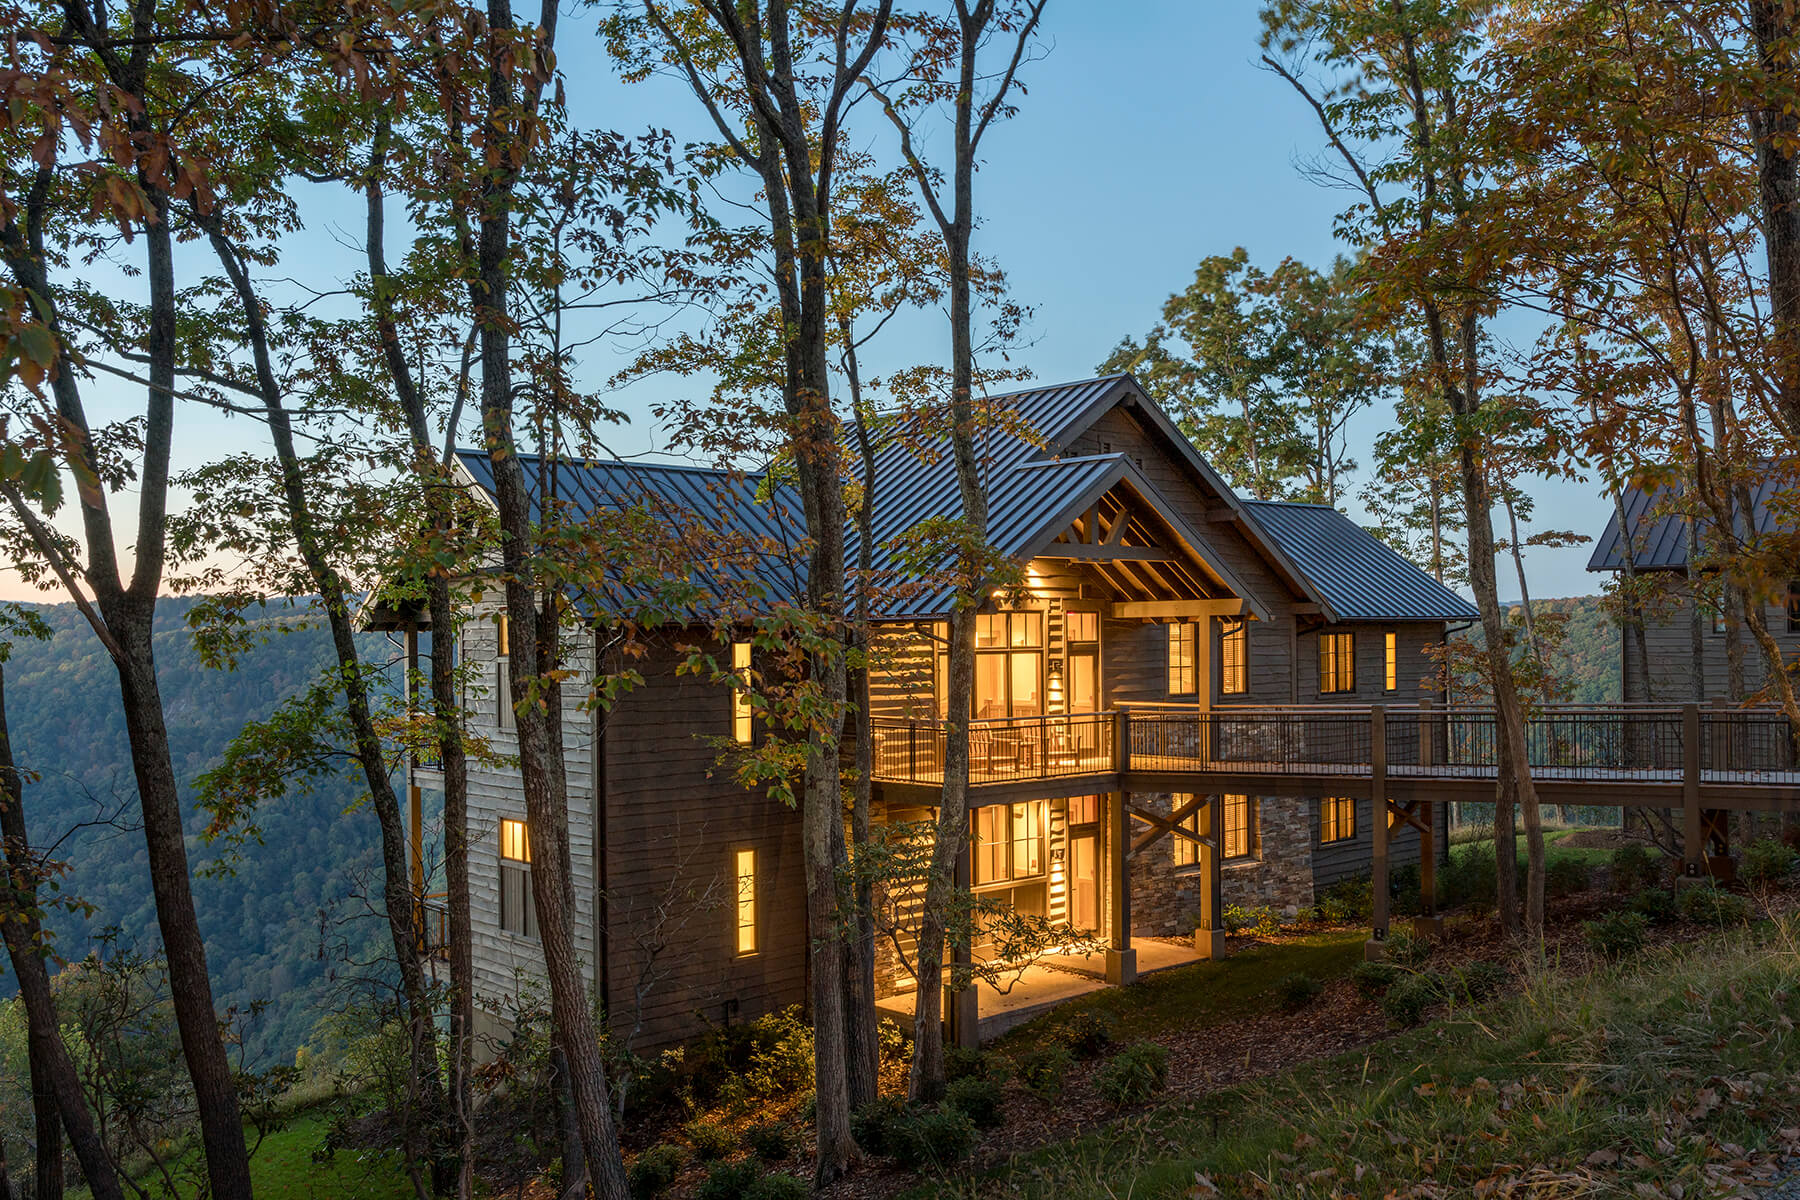 Primland Resort architectural renovation project